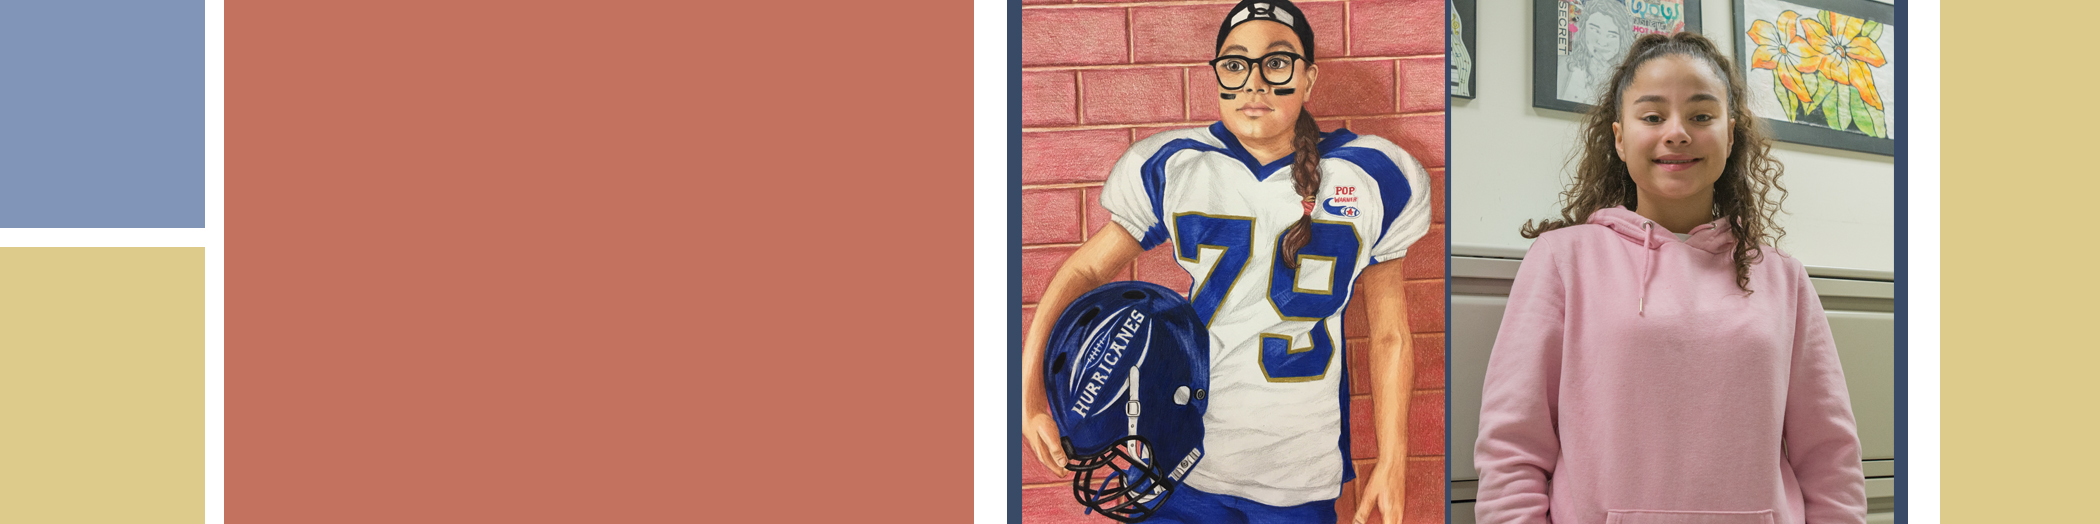 self portrait of Gold Key Winner in Pop Warner uniform and photo of student at right